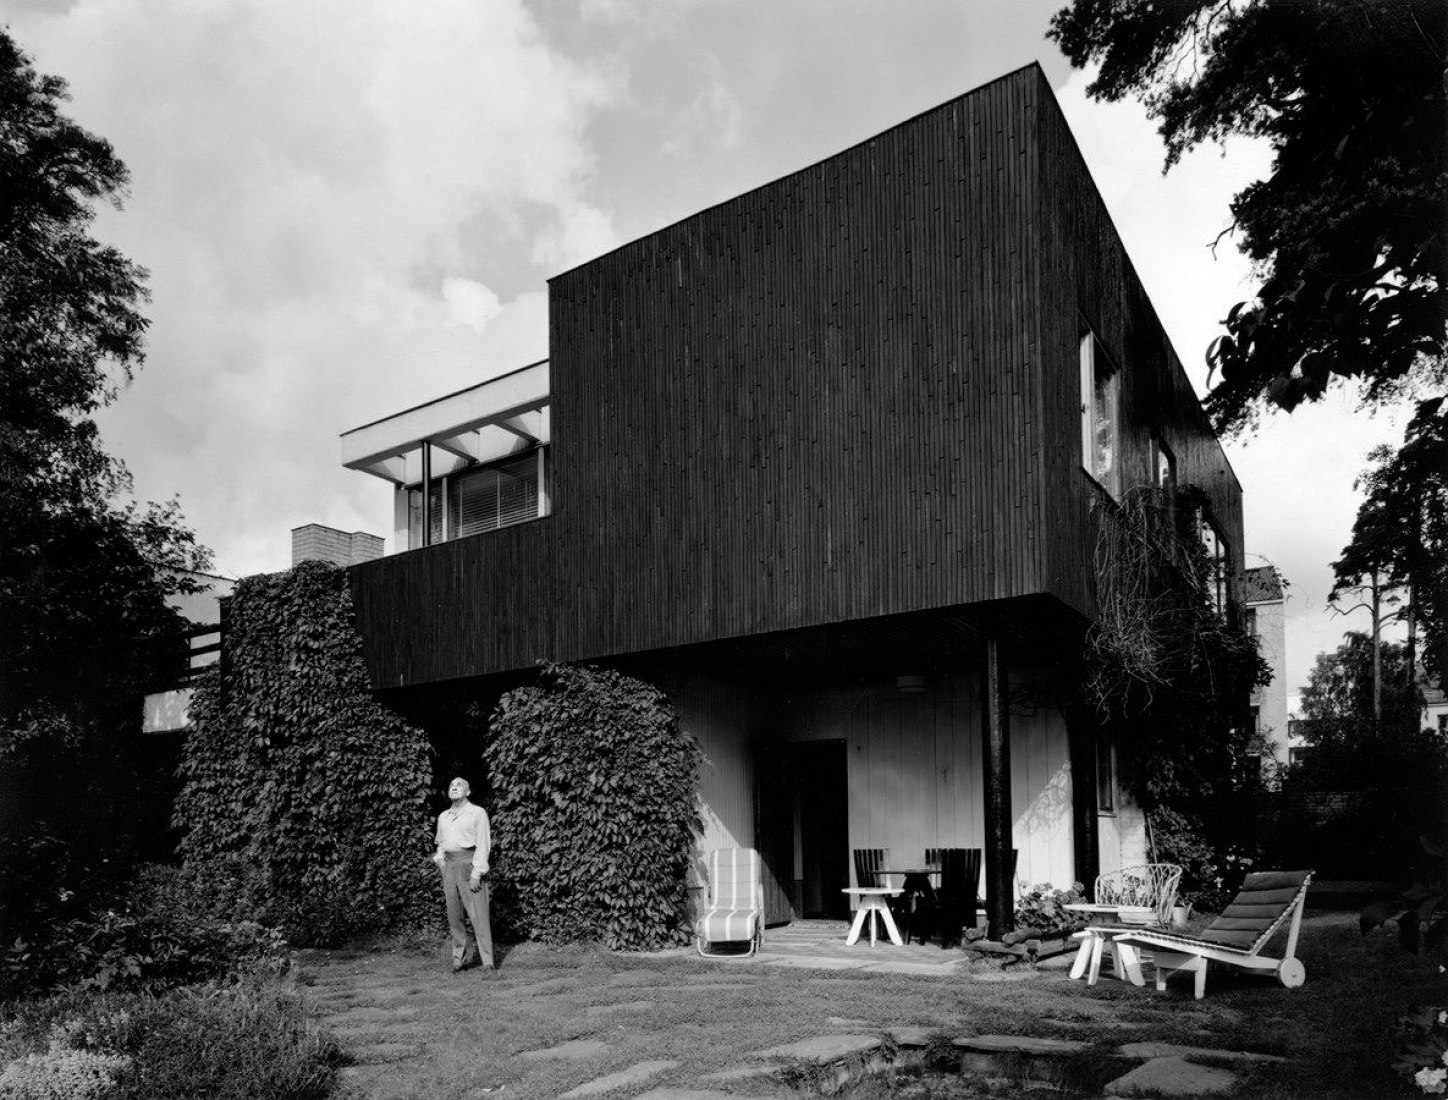 Alvar Aalto In Front of Aalto House (1930s). Image courtesy of Alvar Aalto Museum, photography by Eva and Pertti Ingervo